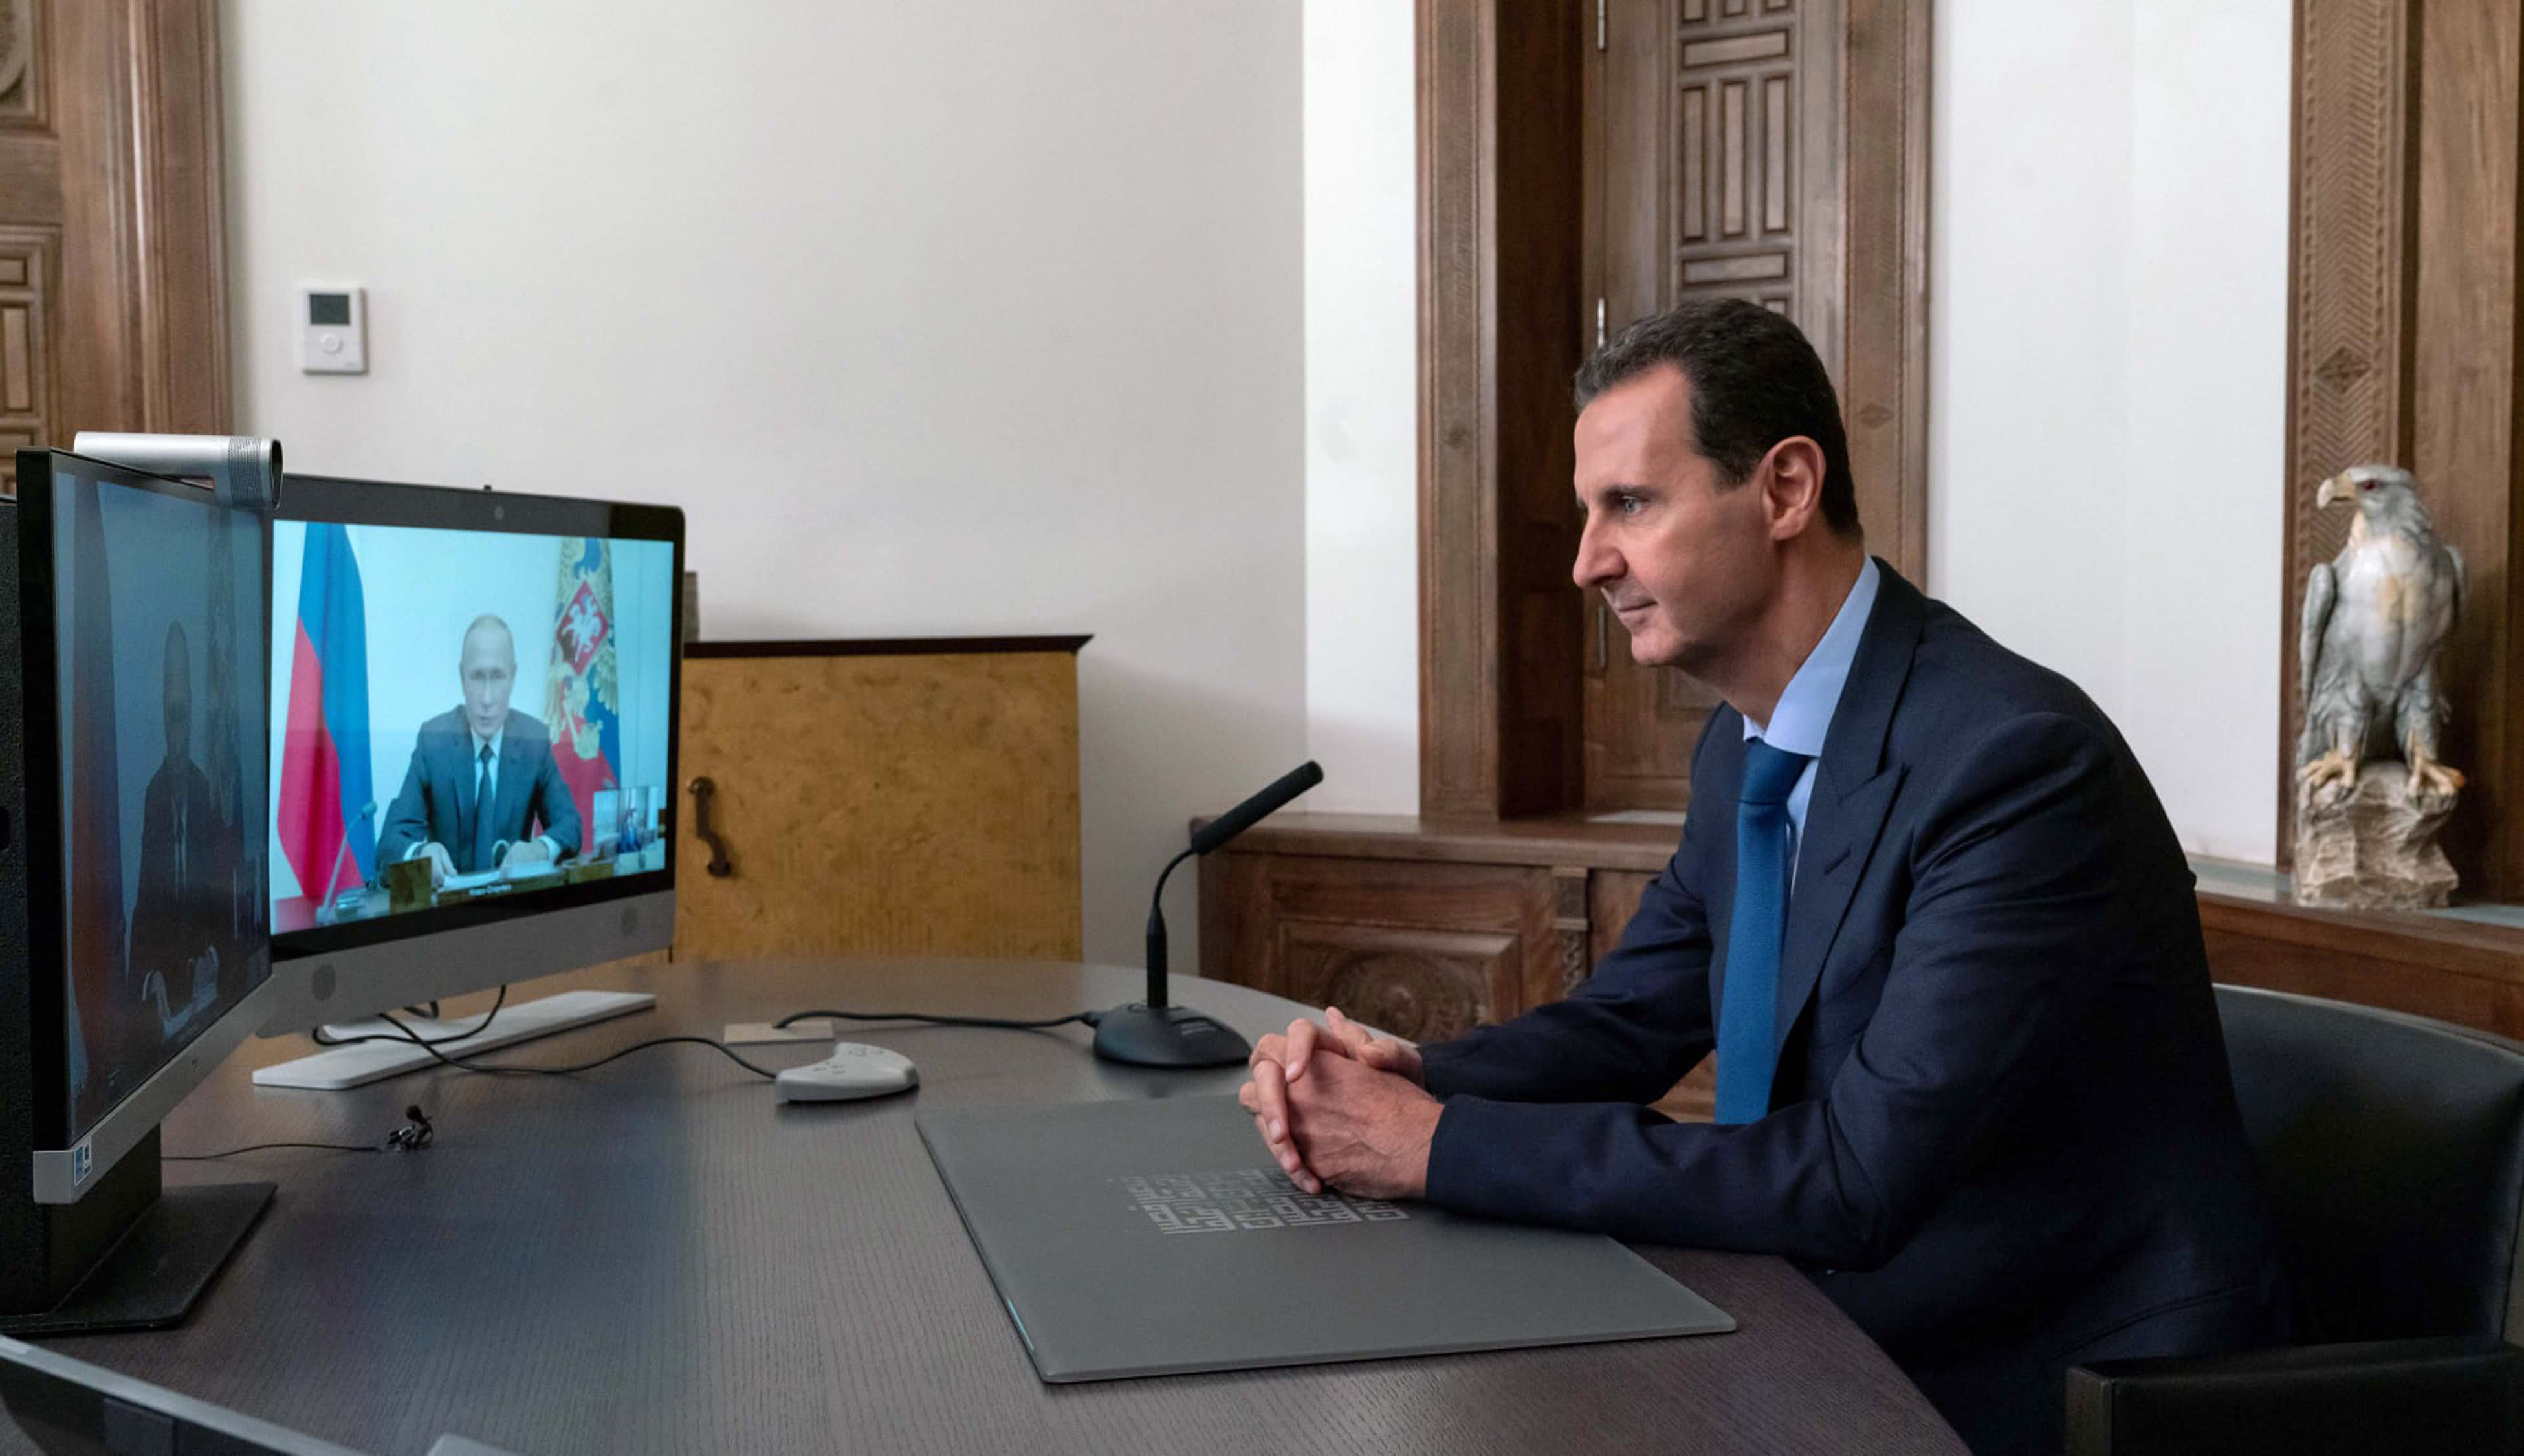 In this photo released by the Syrian official news agency SANA, Syrian President Bashar Assad listens to Russian President Vladimir Putin during their talks via video conference, in Damascus, Syria, Monday, Nov. 9, 2020. (SANA via AP)